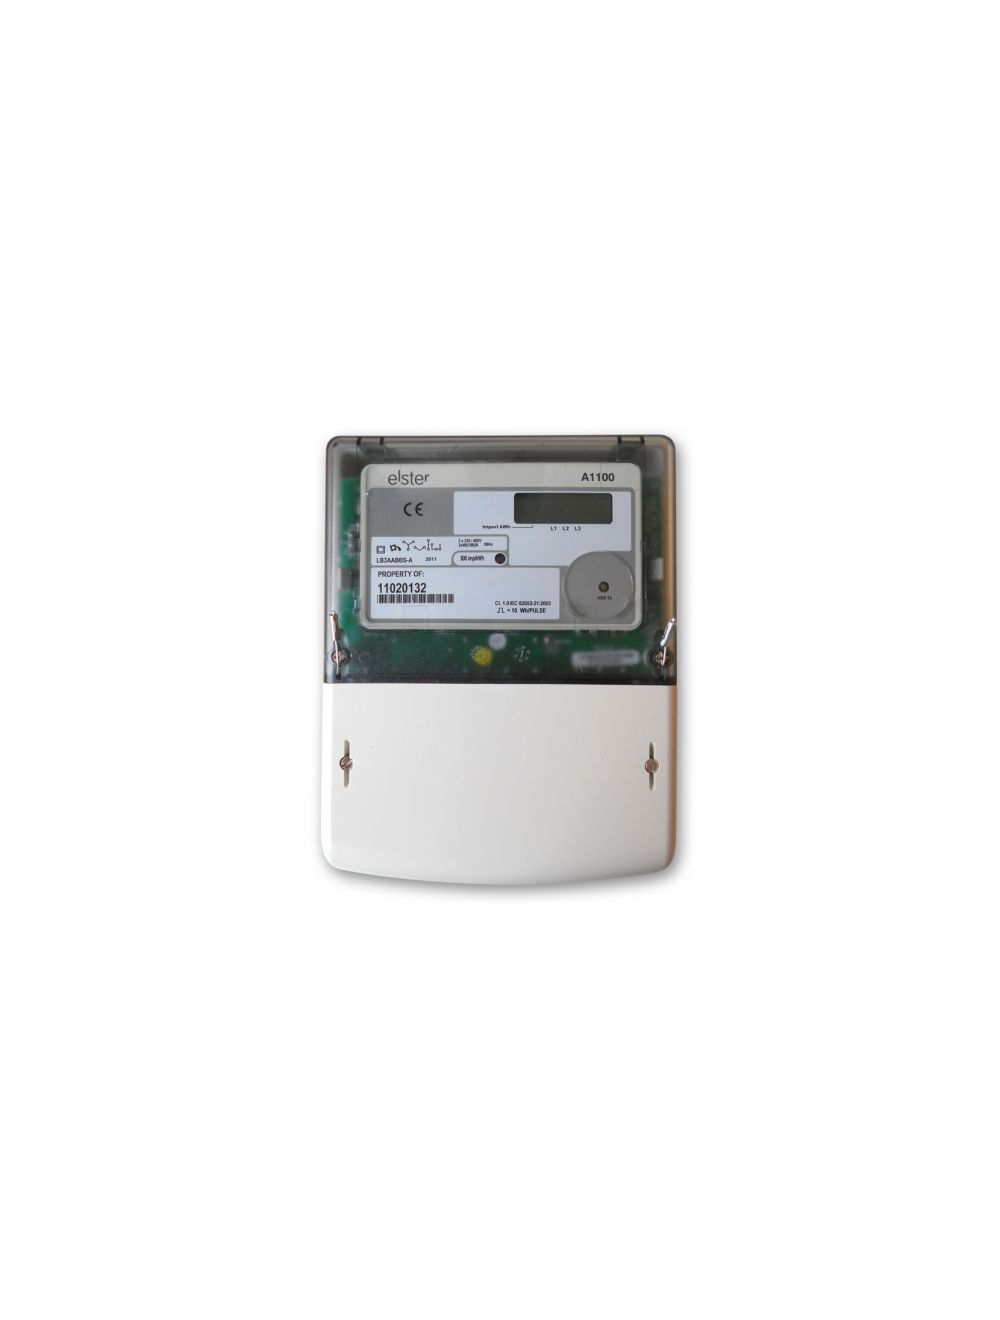 ELSTER A1100 DC THREE PHASE KWH 100A ELECTRICITY METER MID OFGEM APPROVED